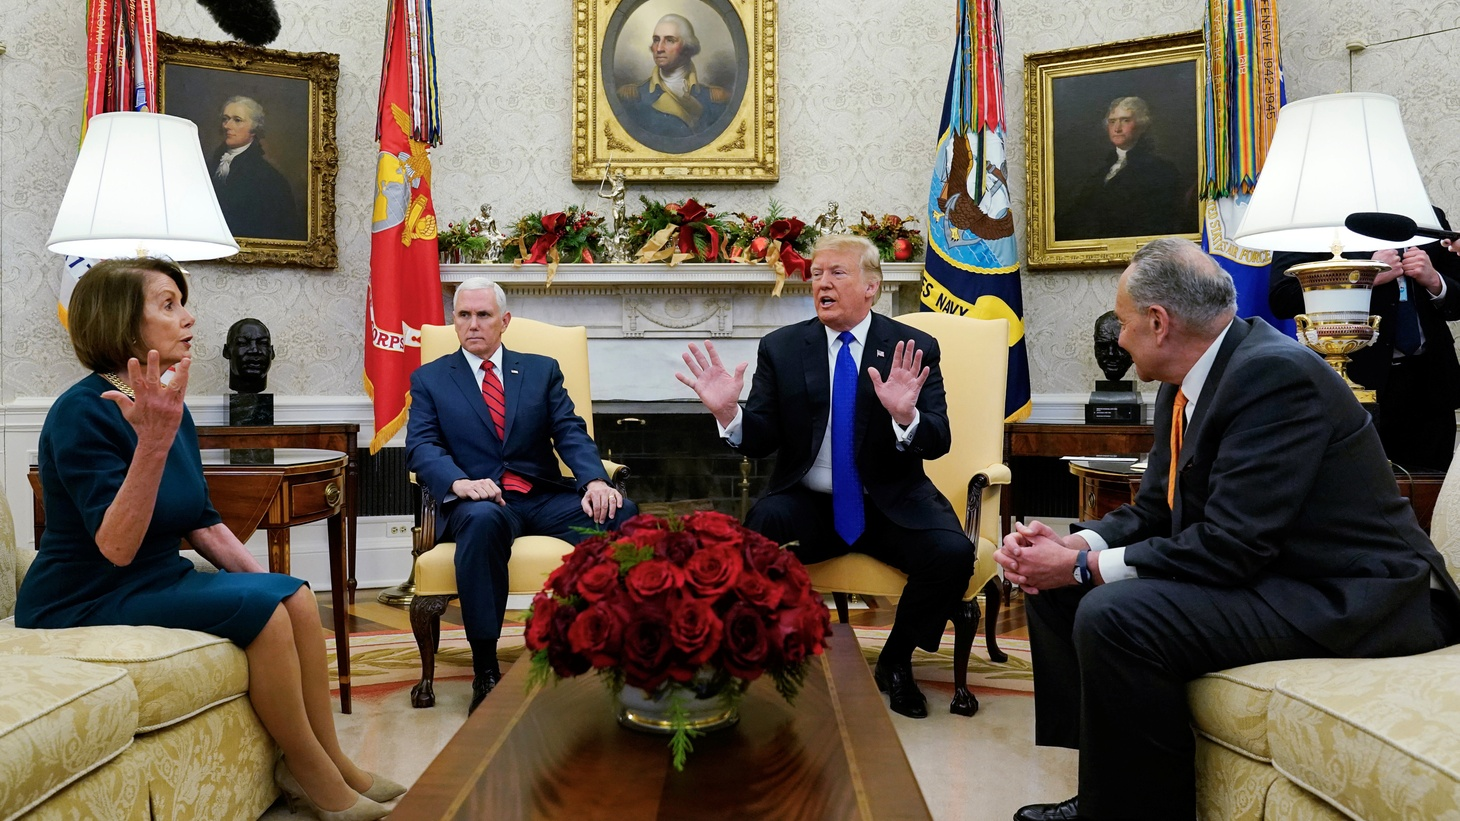 U.S. House Speaker designate Nancy Pelosi (D-CA) speaks with Vice President Mike Pence and U.S. President Donald Trump as they meet with her and Senate Minority Leader Chuck Schumer (D-NY) in the Oval Office at the White House in Washington, U.S., December 11, 2018.